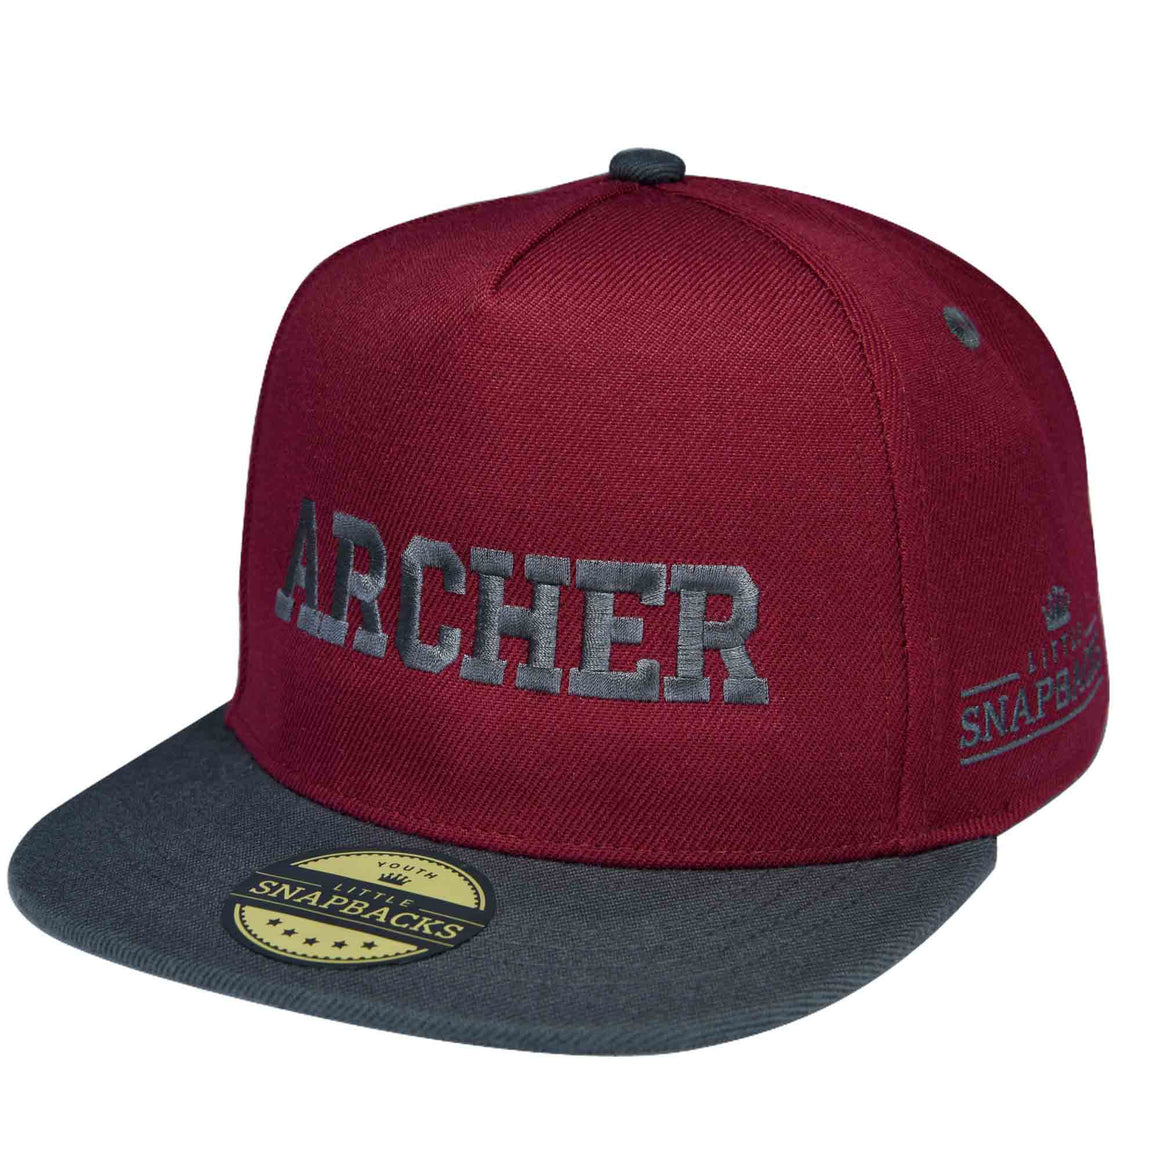 Little Snapbacks Burgundy Snapback, Charcoal Thread